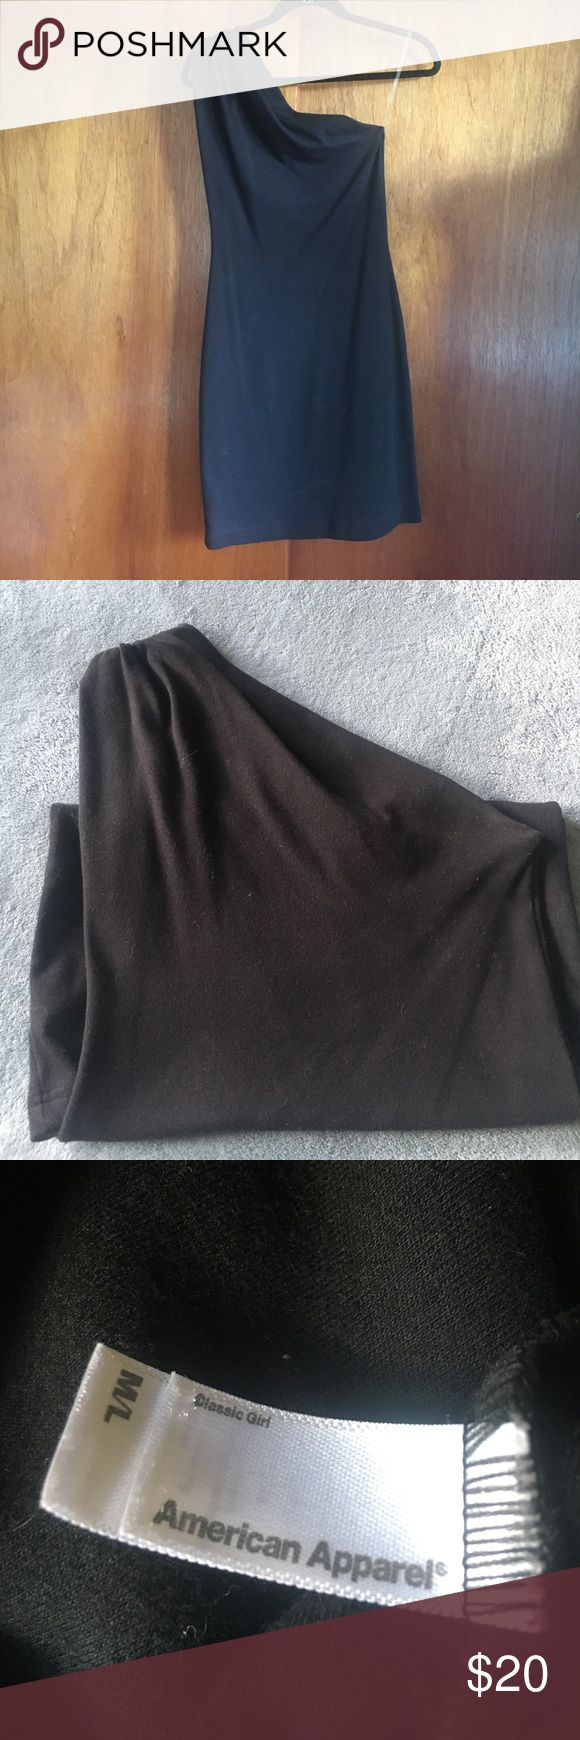 """American Apparel Black One Shoulder Dress American Apparel """"Classic Girl"""" Black, one shoulder dress. Cotton stretch material. Worn once. Looks like new. Dresses One Shoulder"""